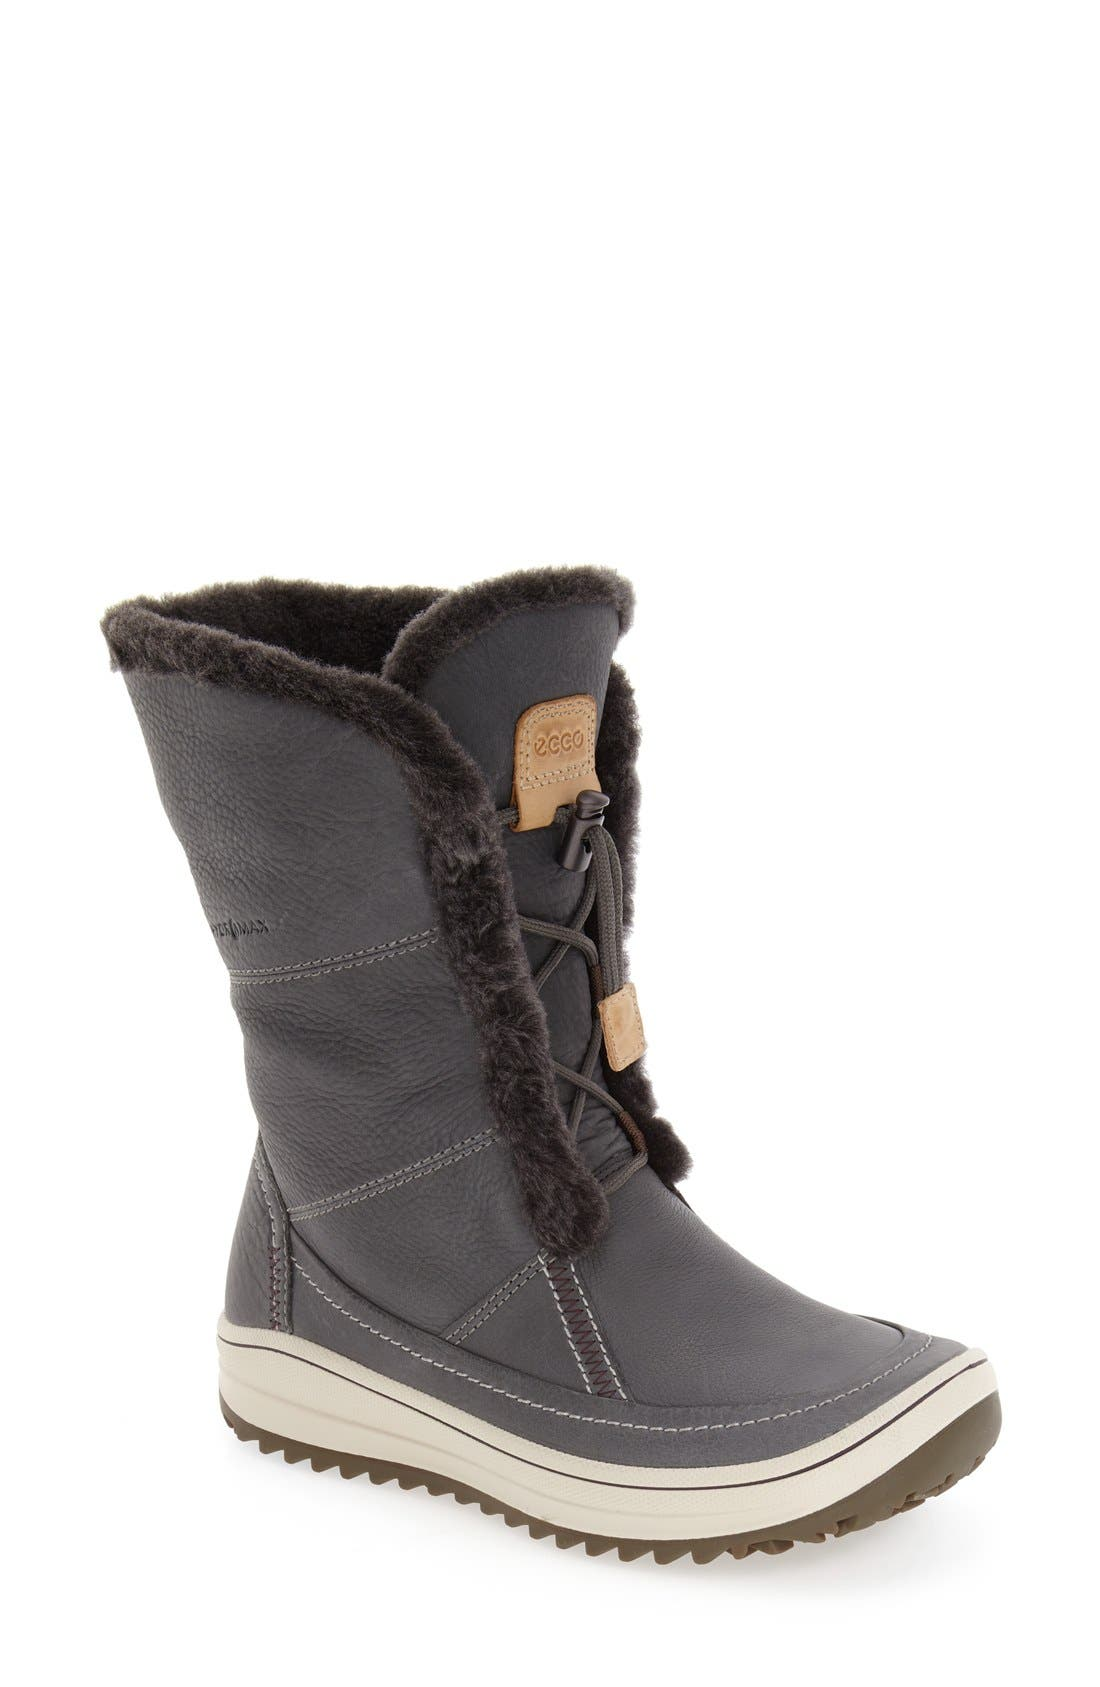 ecco snow boots womens